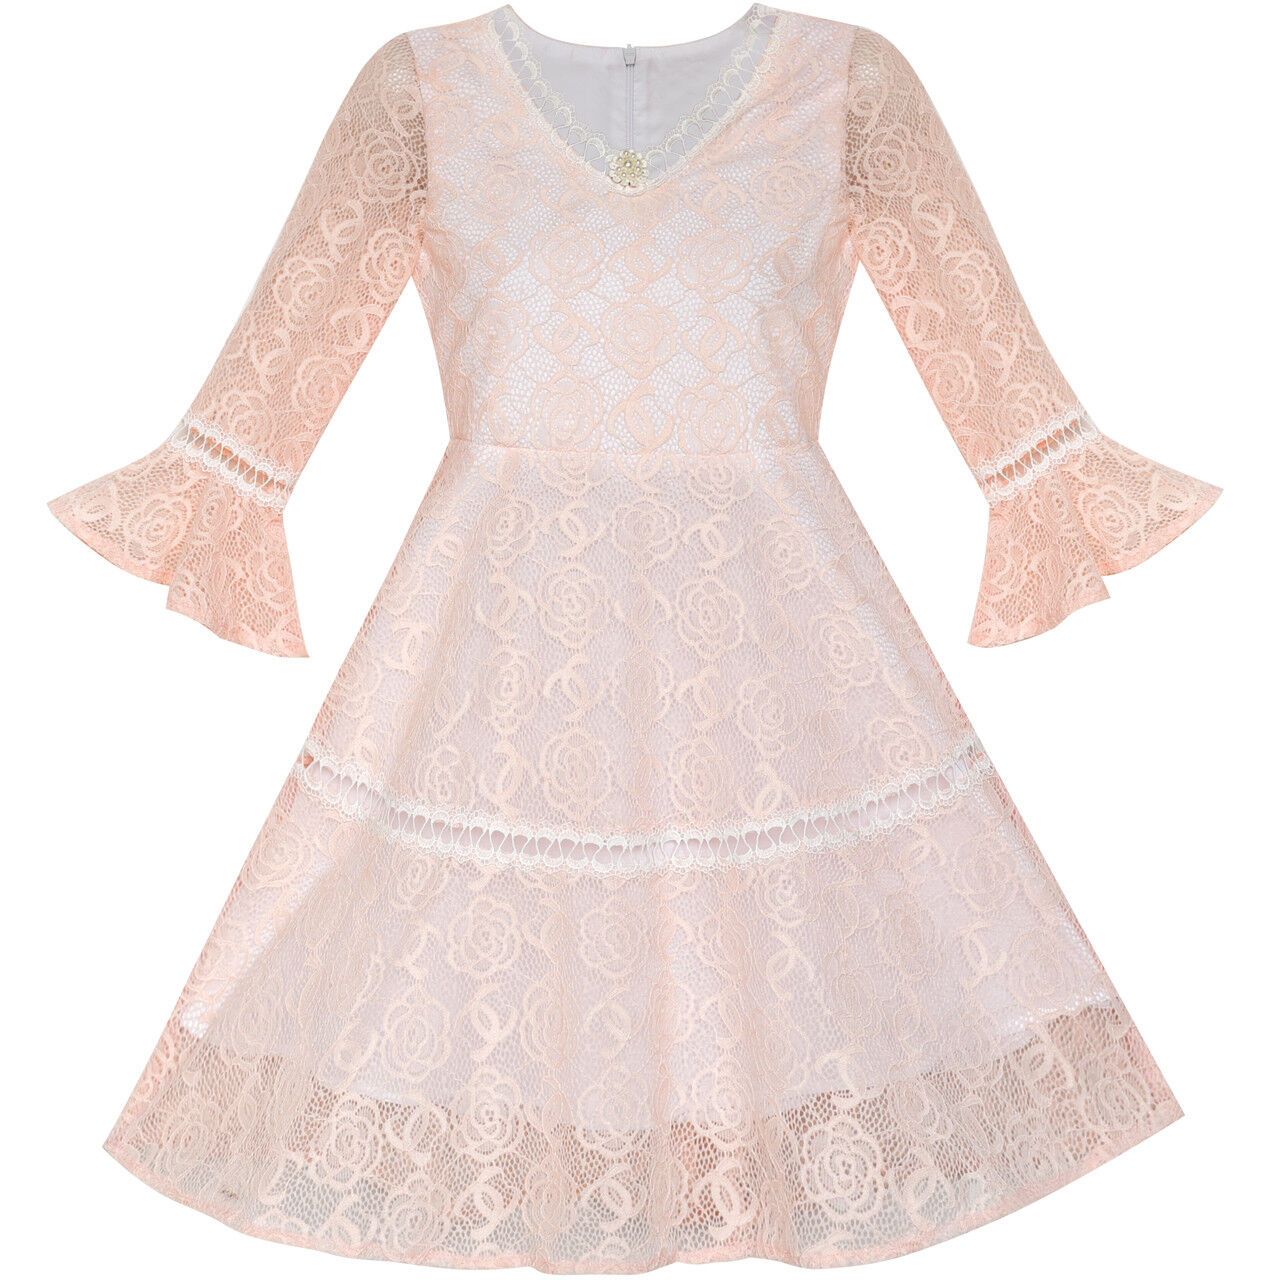 Sunny fashion flower girl dress lace blush pink bell sleeve party tips the size is measured manually please allow minor errors of size measurement mightylinksfo